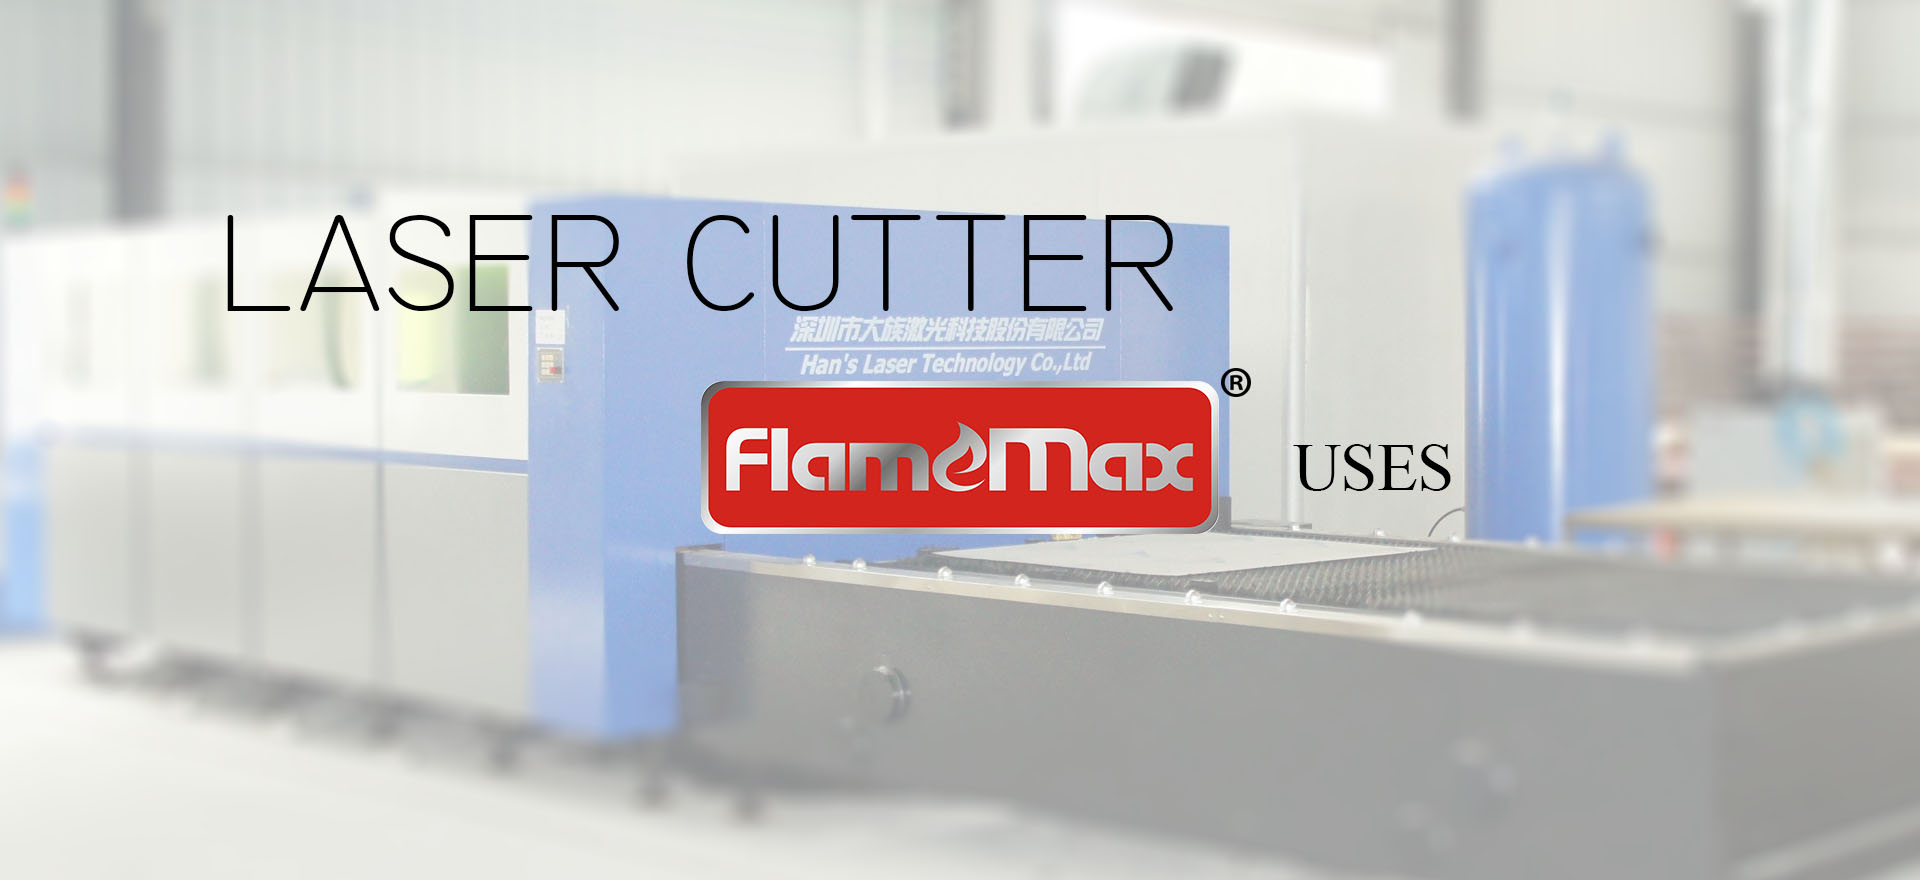 LASER CUTTER FLAMEMAX USES